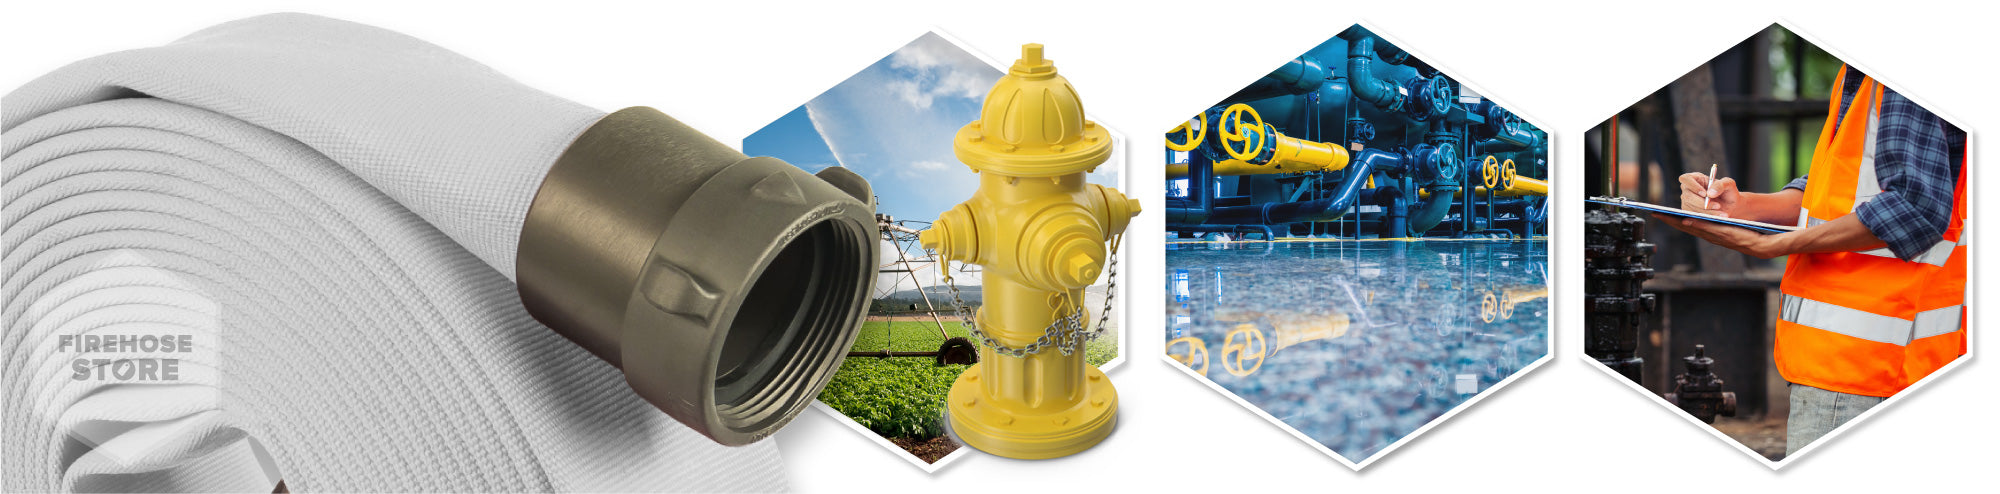 4 Inch x 75 Feet Fire Hydrant Hose Graphic Overview